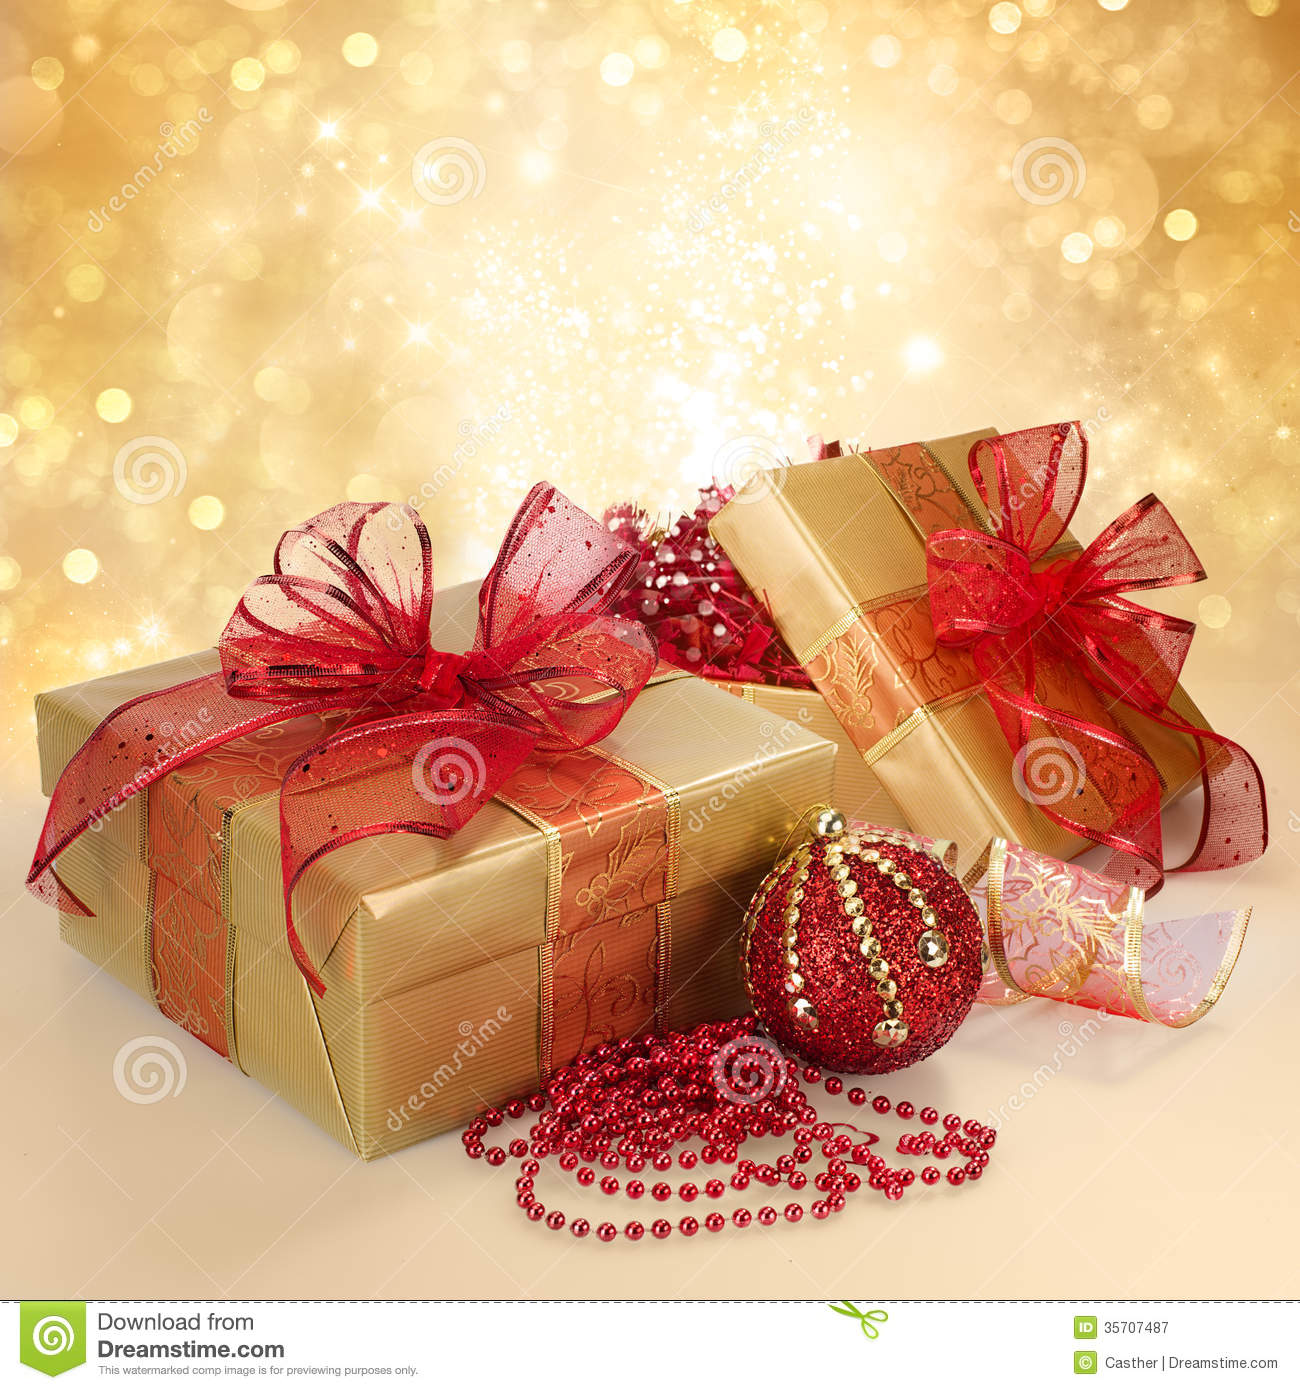 christmas gift box and decorations in gold and red - Christmas Gift Decorations